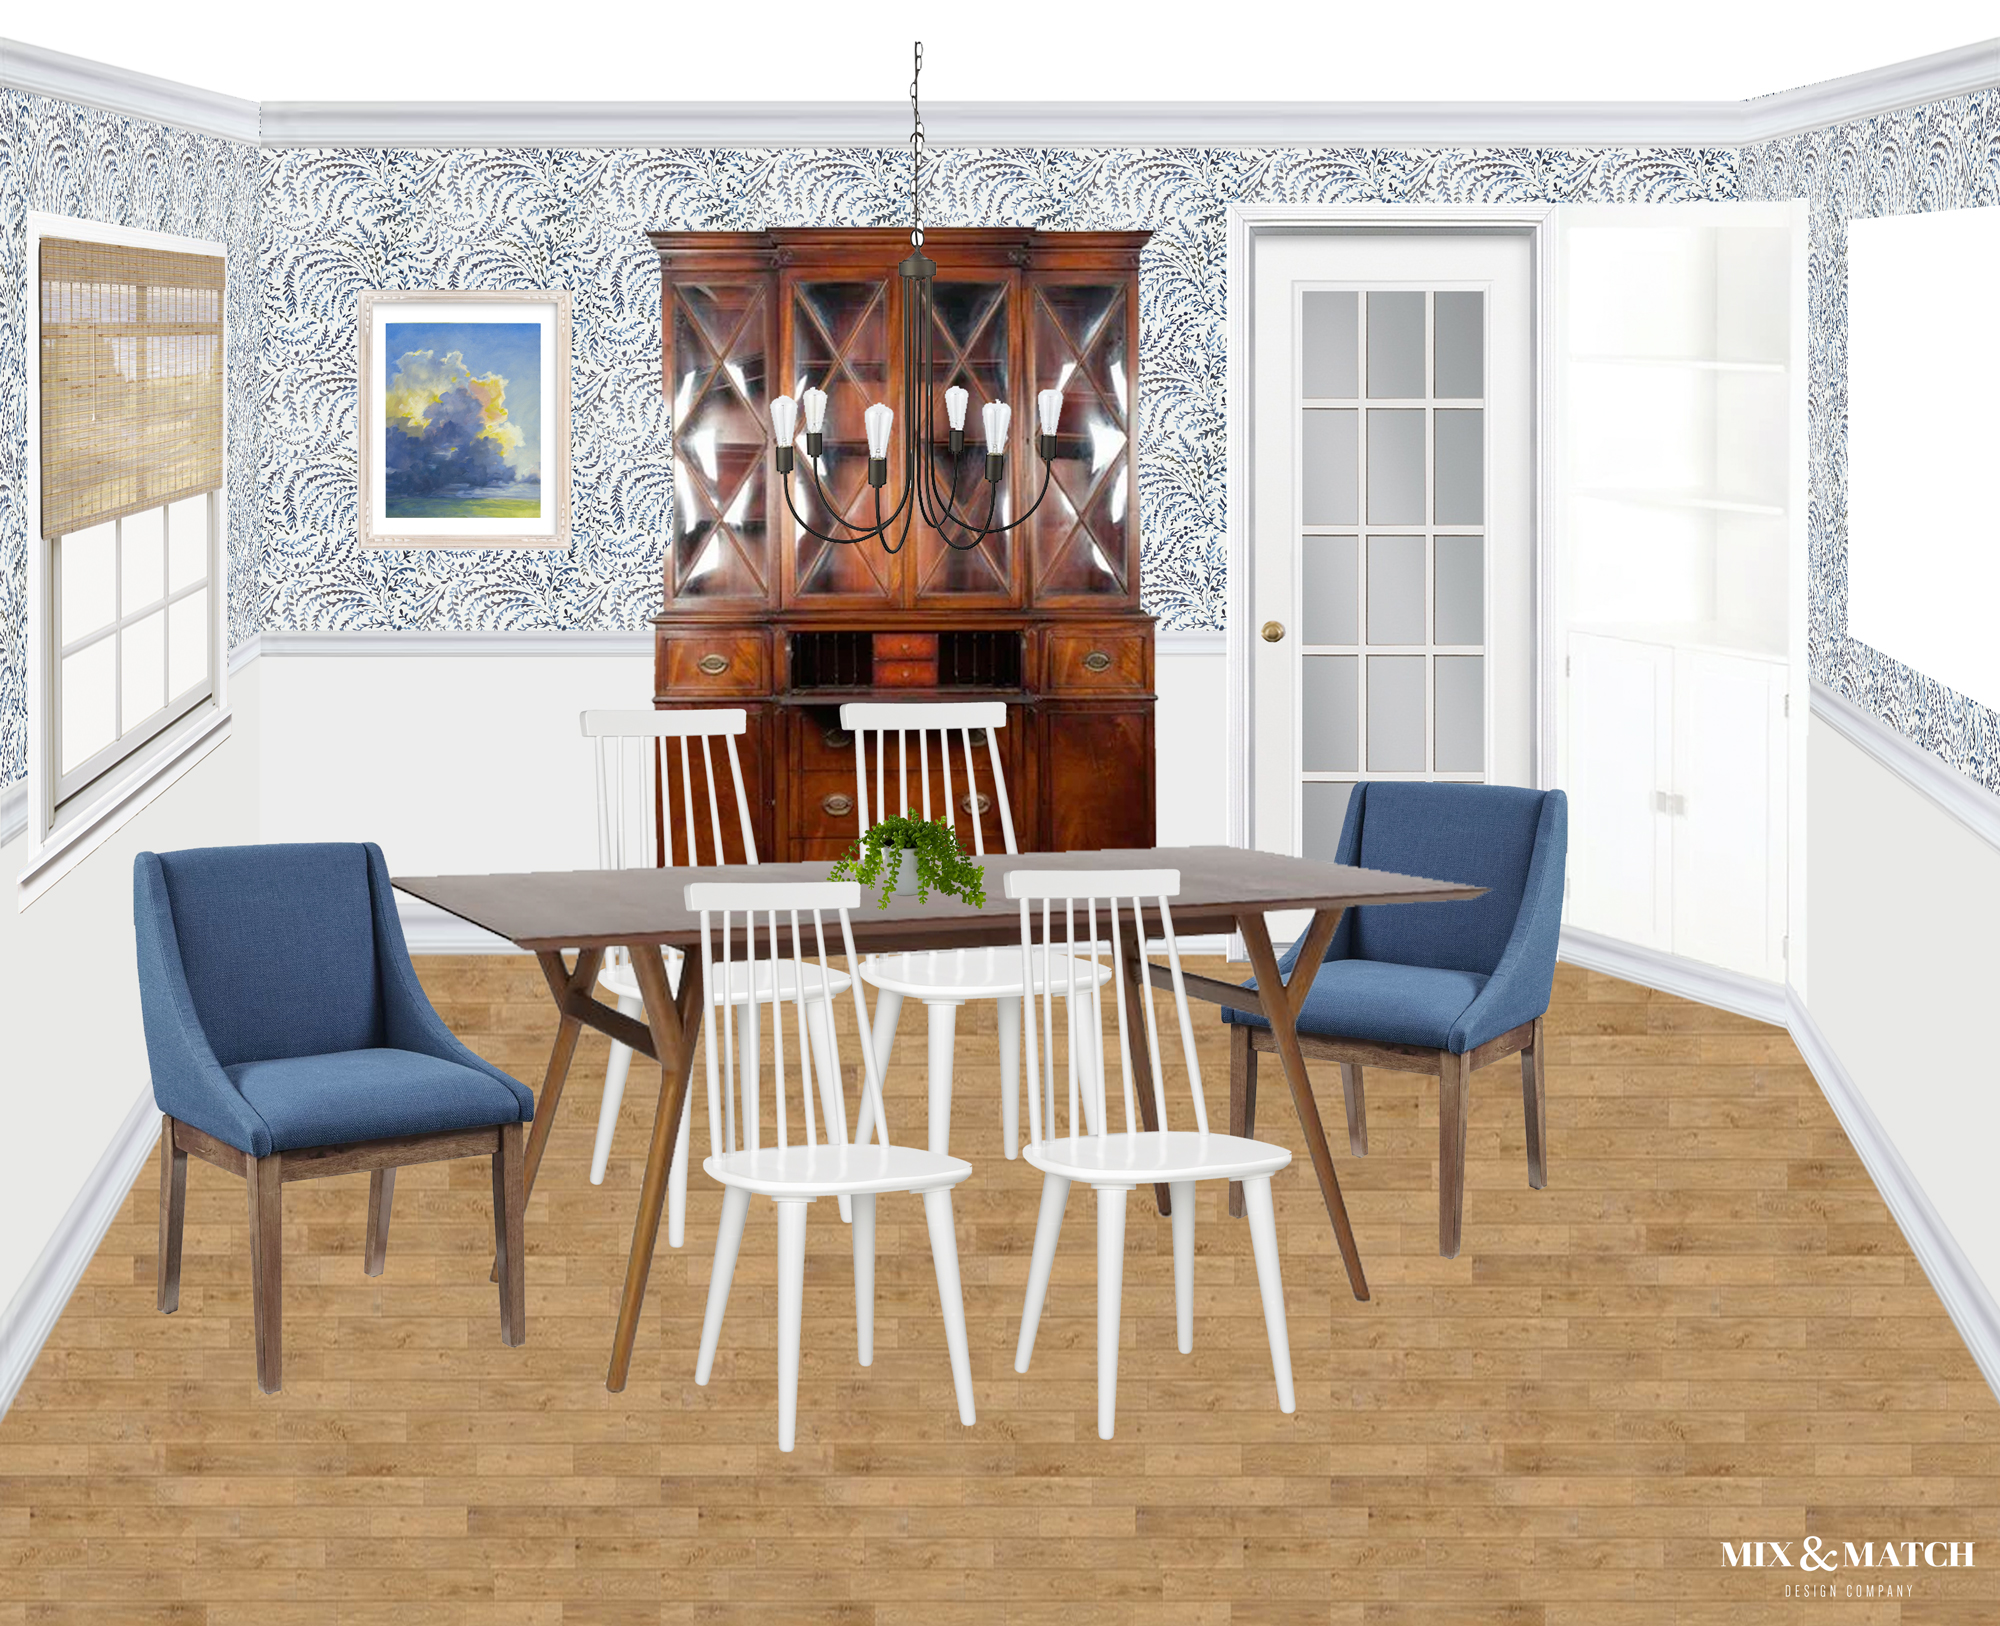 This new traditional dining room designed by Mix & Match Design Company honors the classic architecture of this colonial home, but gives is a fresh feel with clean lined furniture and a blue botanical wallpaper above the wainscoting. // #edesign #newtraditional #diningroom